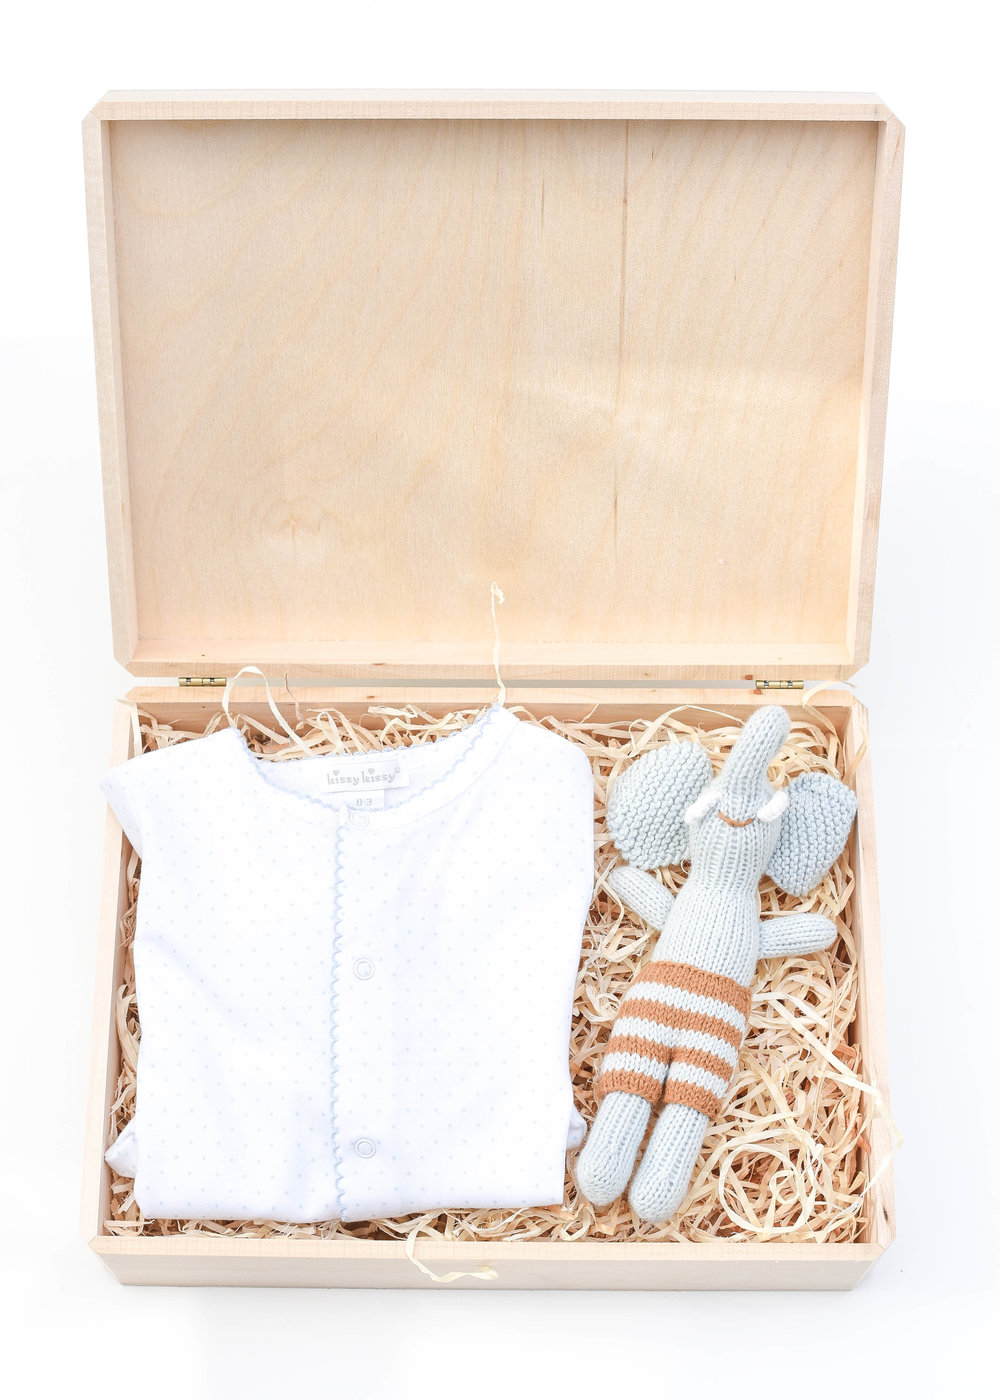 For Baby | Simple & Sweet - L:R | Kissy Kissy Pima Cotton Onsie, White with Blue Dots | Bla Bla Elephant Rattle